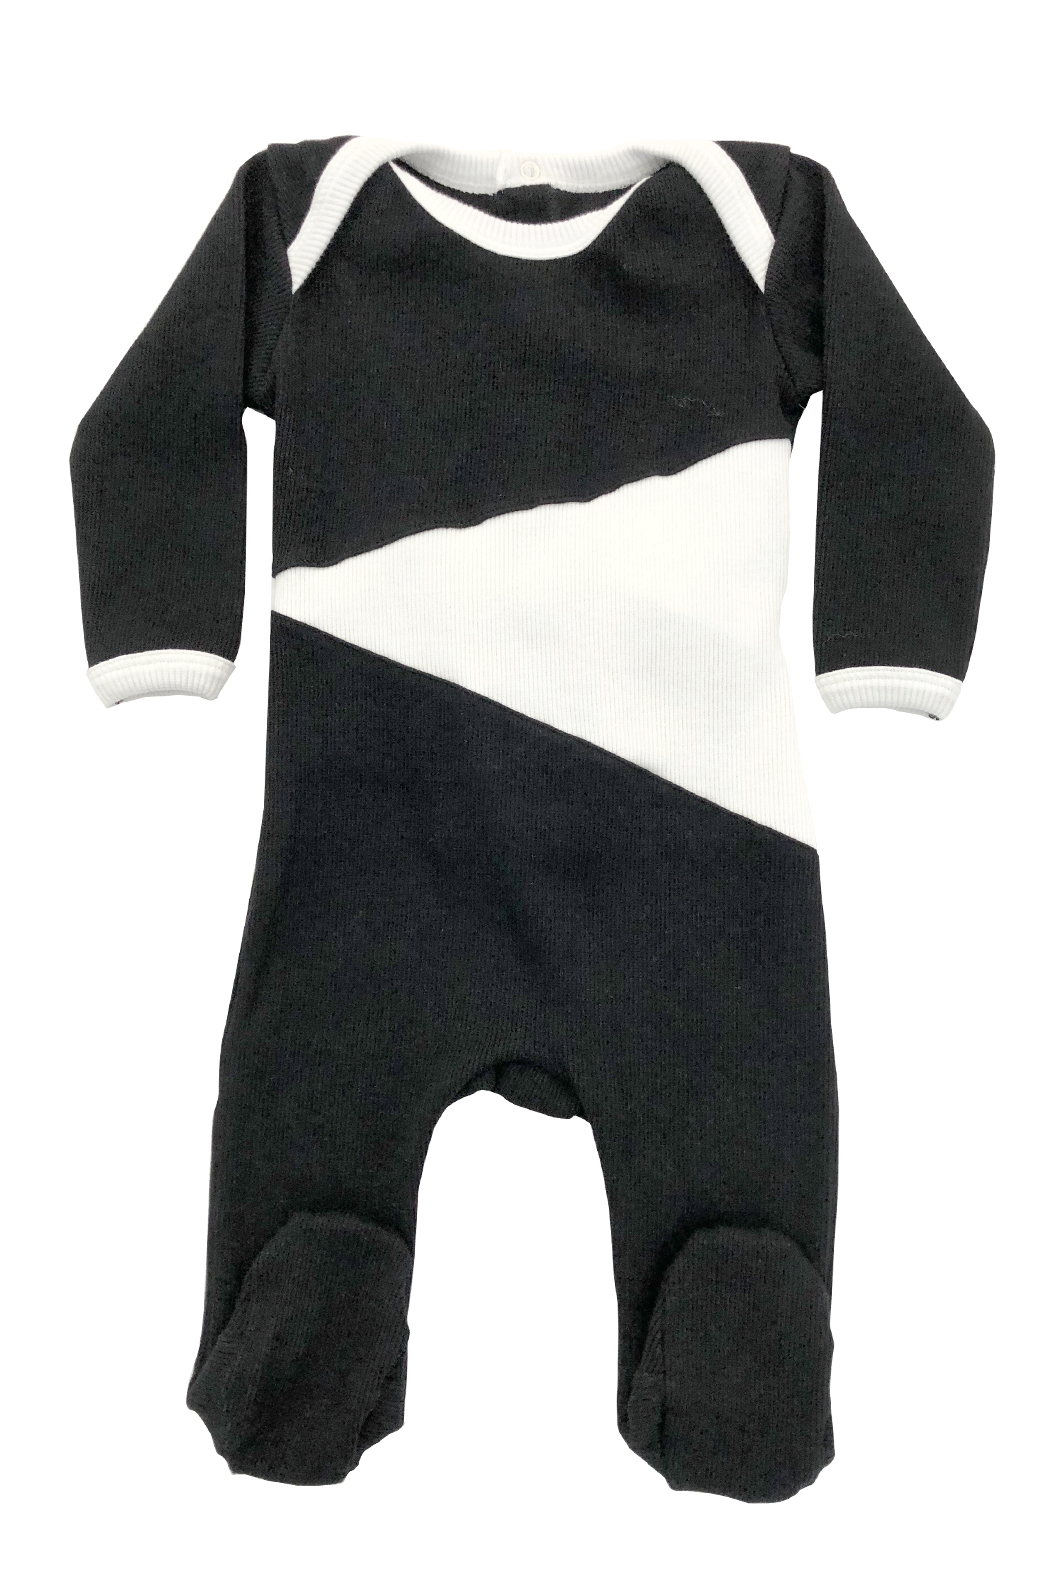 Cotton Pompom Peruvian Cotton Triangle Infant Ribbed Footie - Perfect Baby Gift - Main Image